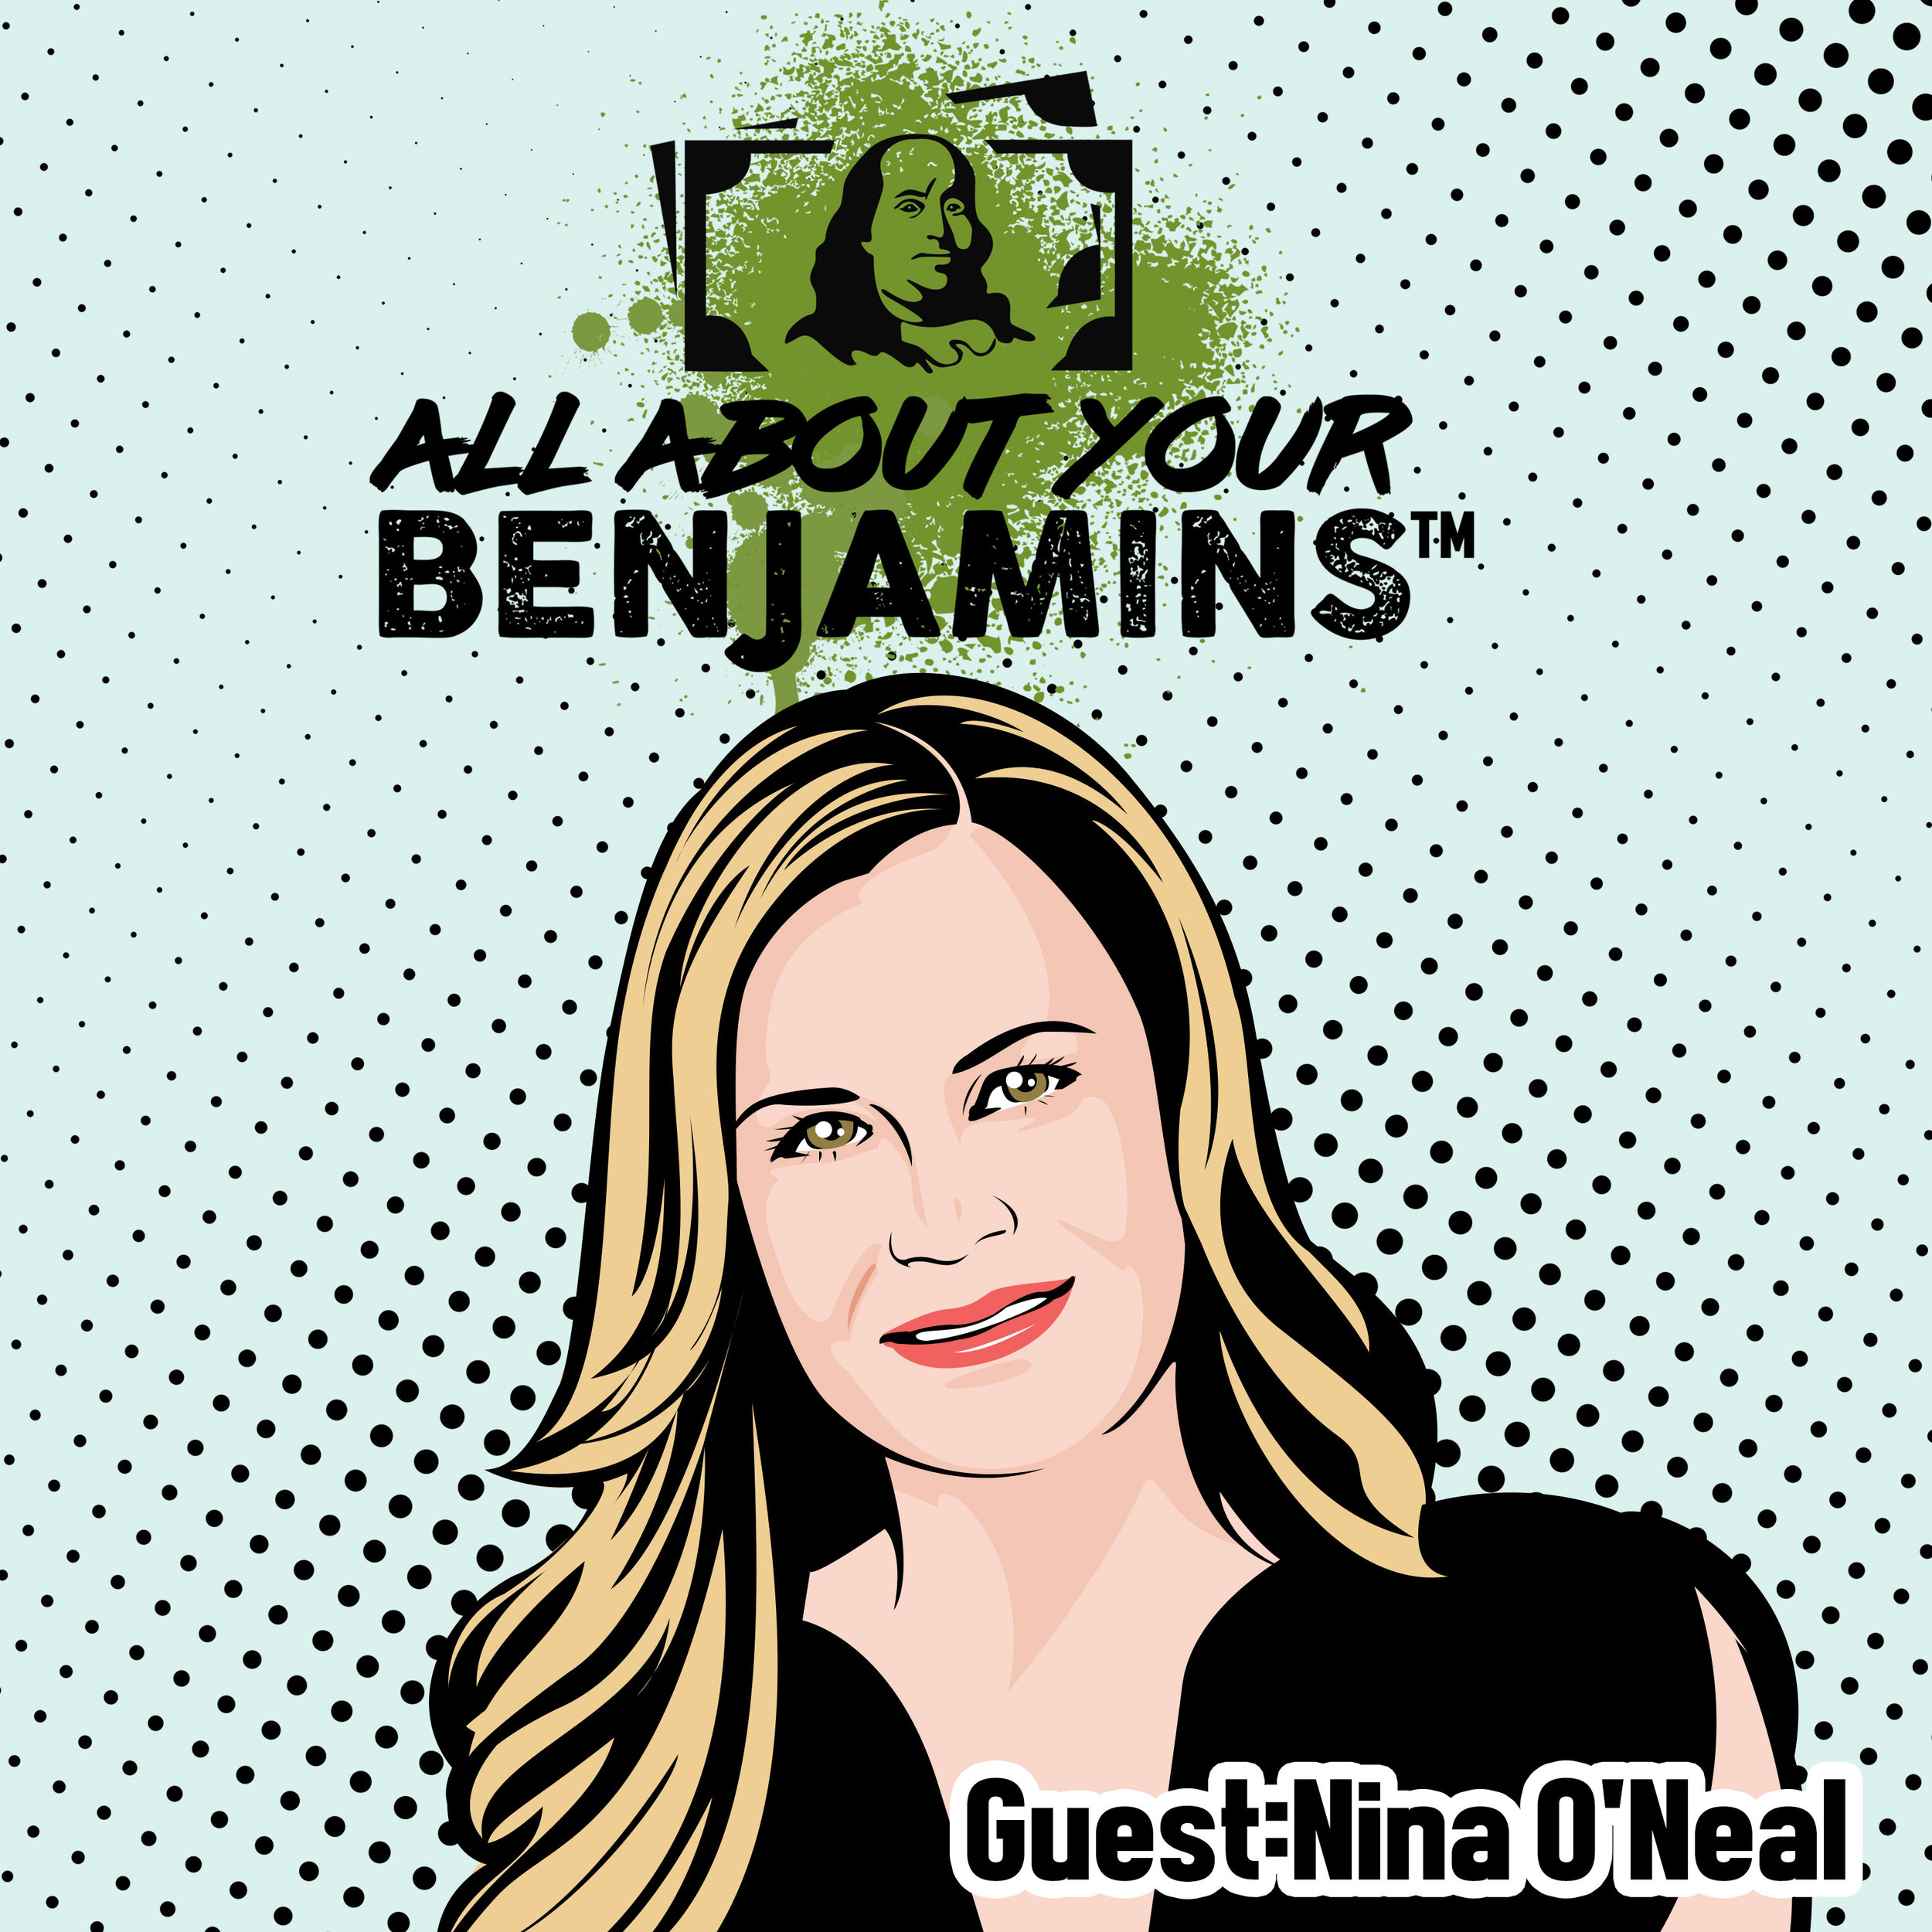 ALL ABOUT YOUR BENJAMINS WITH JUSTIN CASTELLI - Learn about unique financial planning strategies for entrepreneurs and high income earning professionals that Justin and Nina discuss on this podcast. They also share her fun story about working with Britney Spears, what fiduciary REALLY means, the debate on advisor business models, and more!